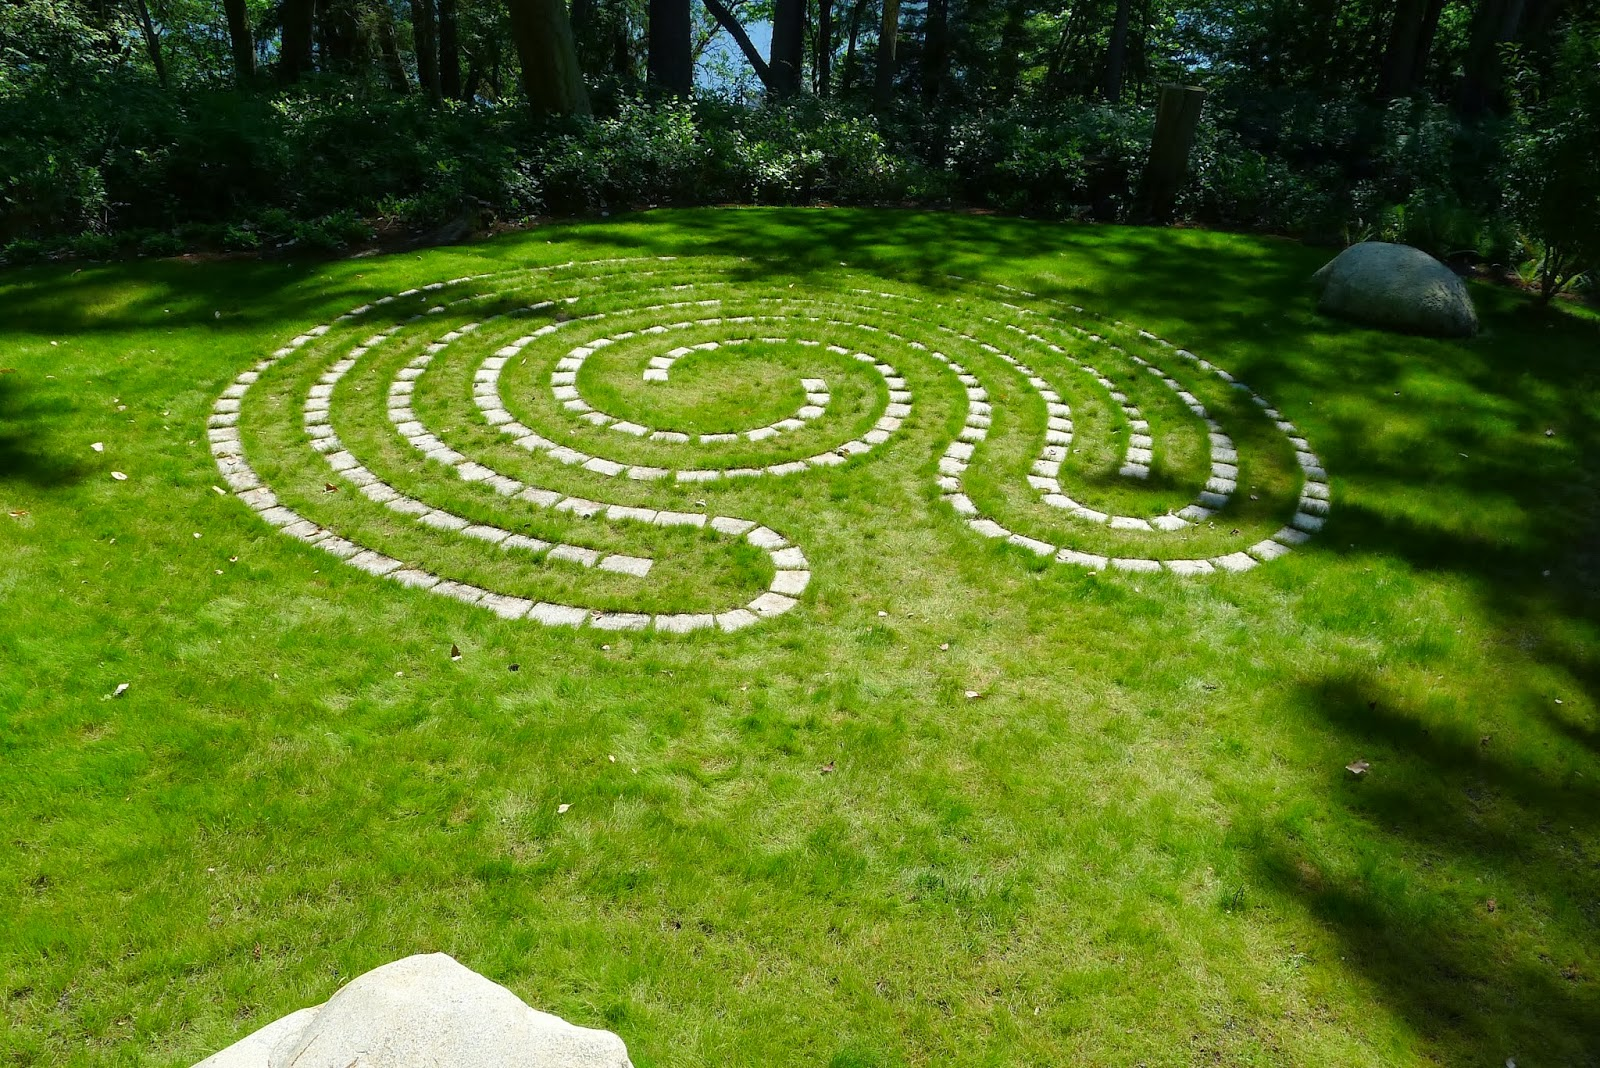 Labyrinth Garden Designs Sixteen Feet on heart labyrinth designs, greenhouse garden designs, christian prayer labyrinth designs, simple garden designs, water garden designs, rectangular prayer labyrinth designs, meditation garden designs, finger labyrinth designs, new mexico garden designs, school garden designs, 6 path labyrinth designs, indoor labyrinth designs, informal herb garden designs, dog park designs, shade garden designs, knockout rose garden designs, labyrinth backyard designs, spiral designs, stage garden designs, walking labyrinth designs,